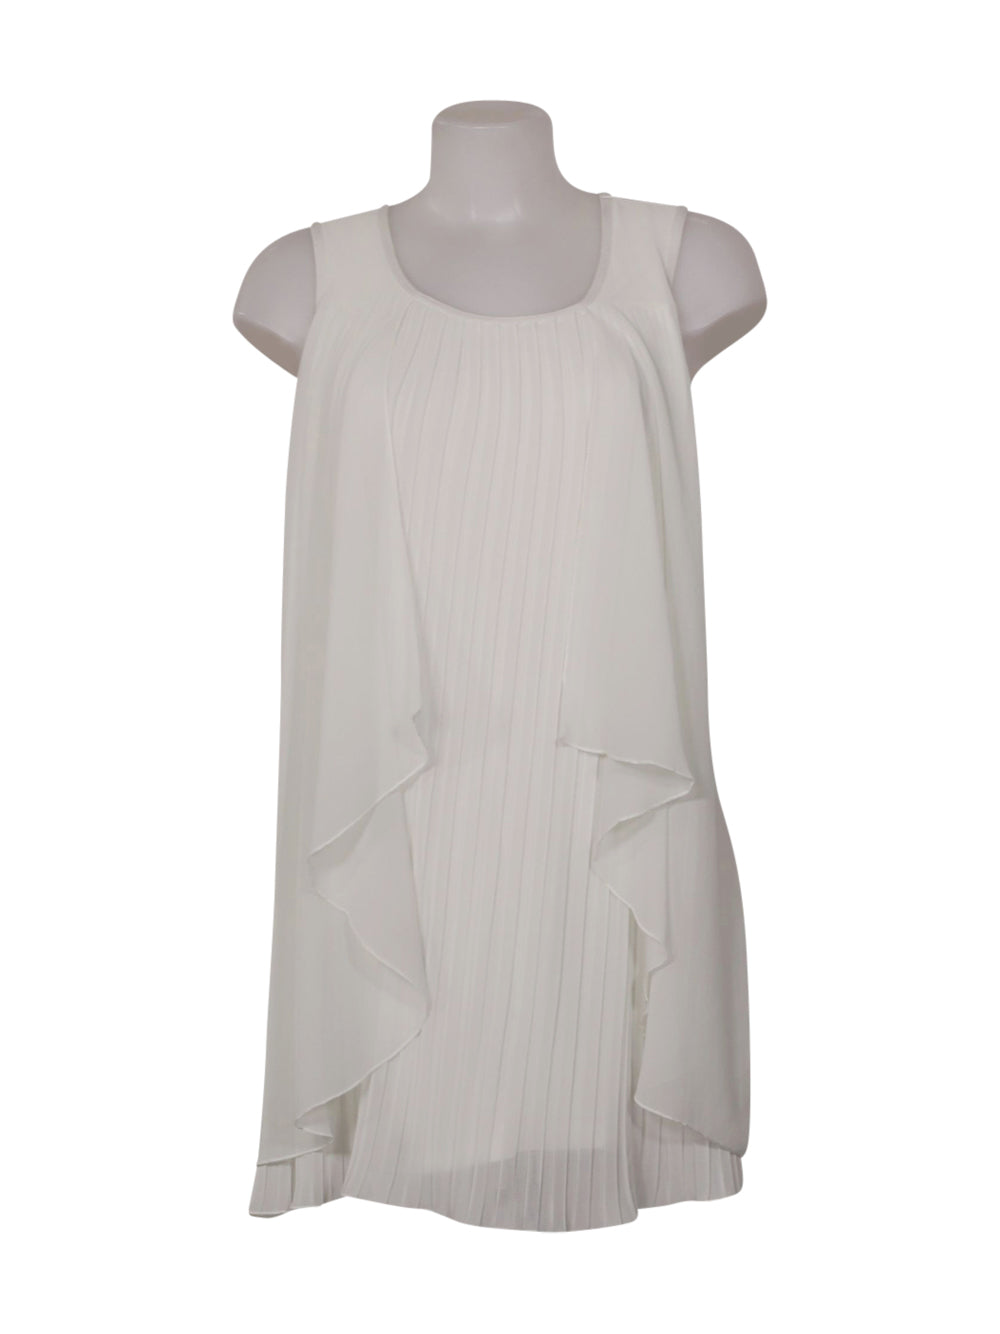 Front photo of Preloved Intimissimi White Woman's dress - size 12/L